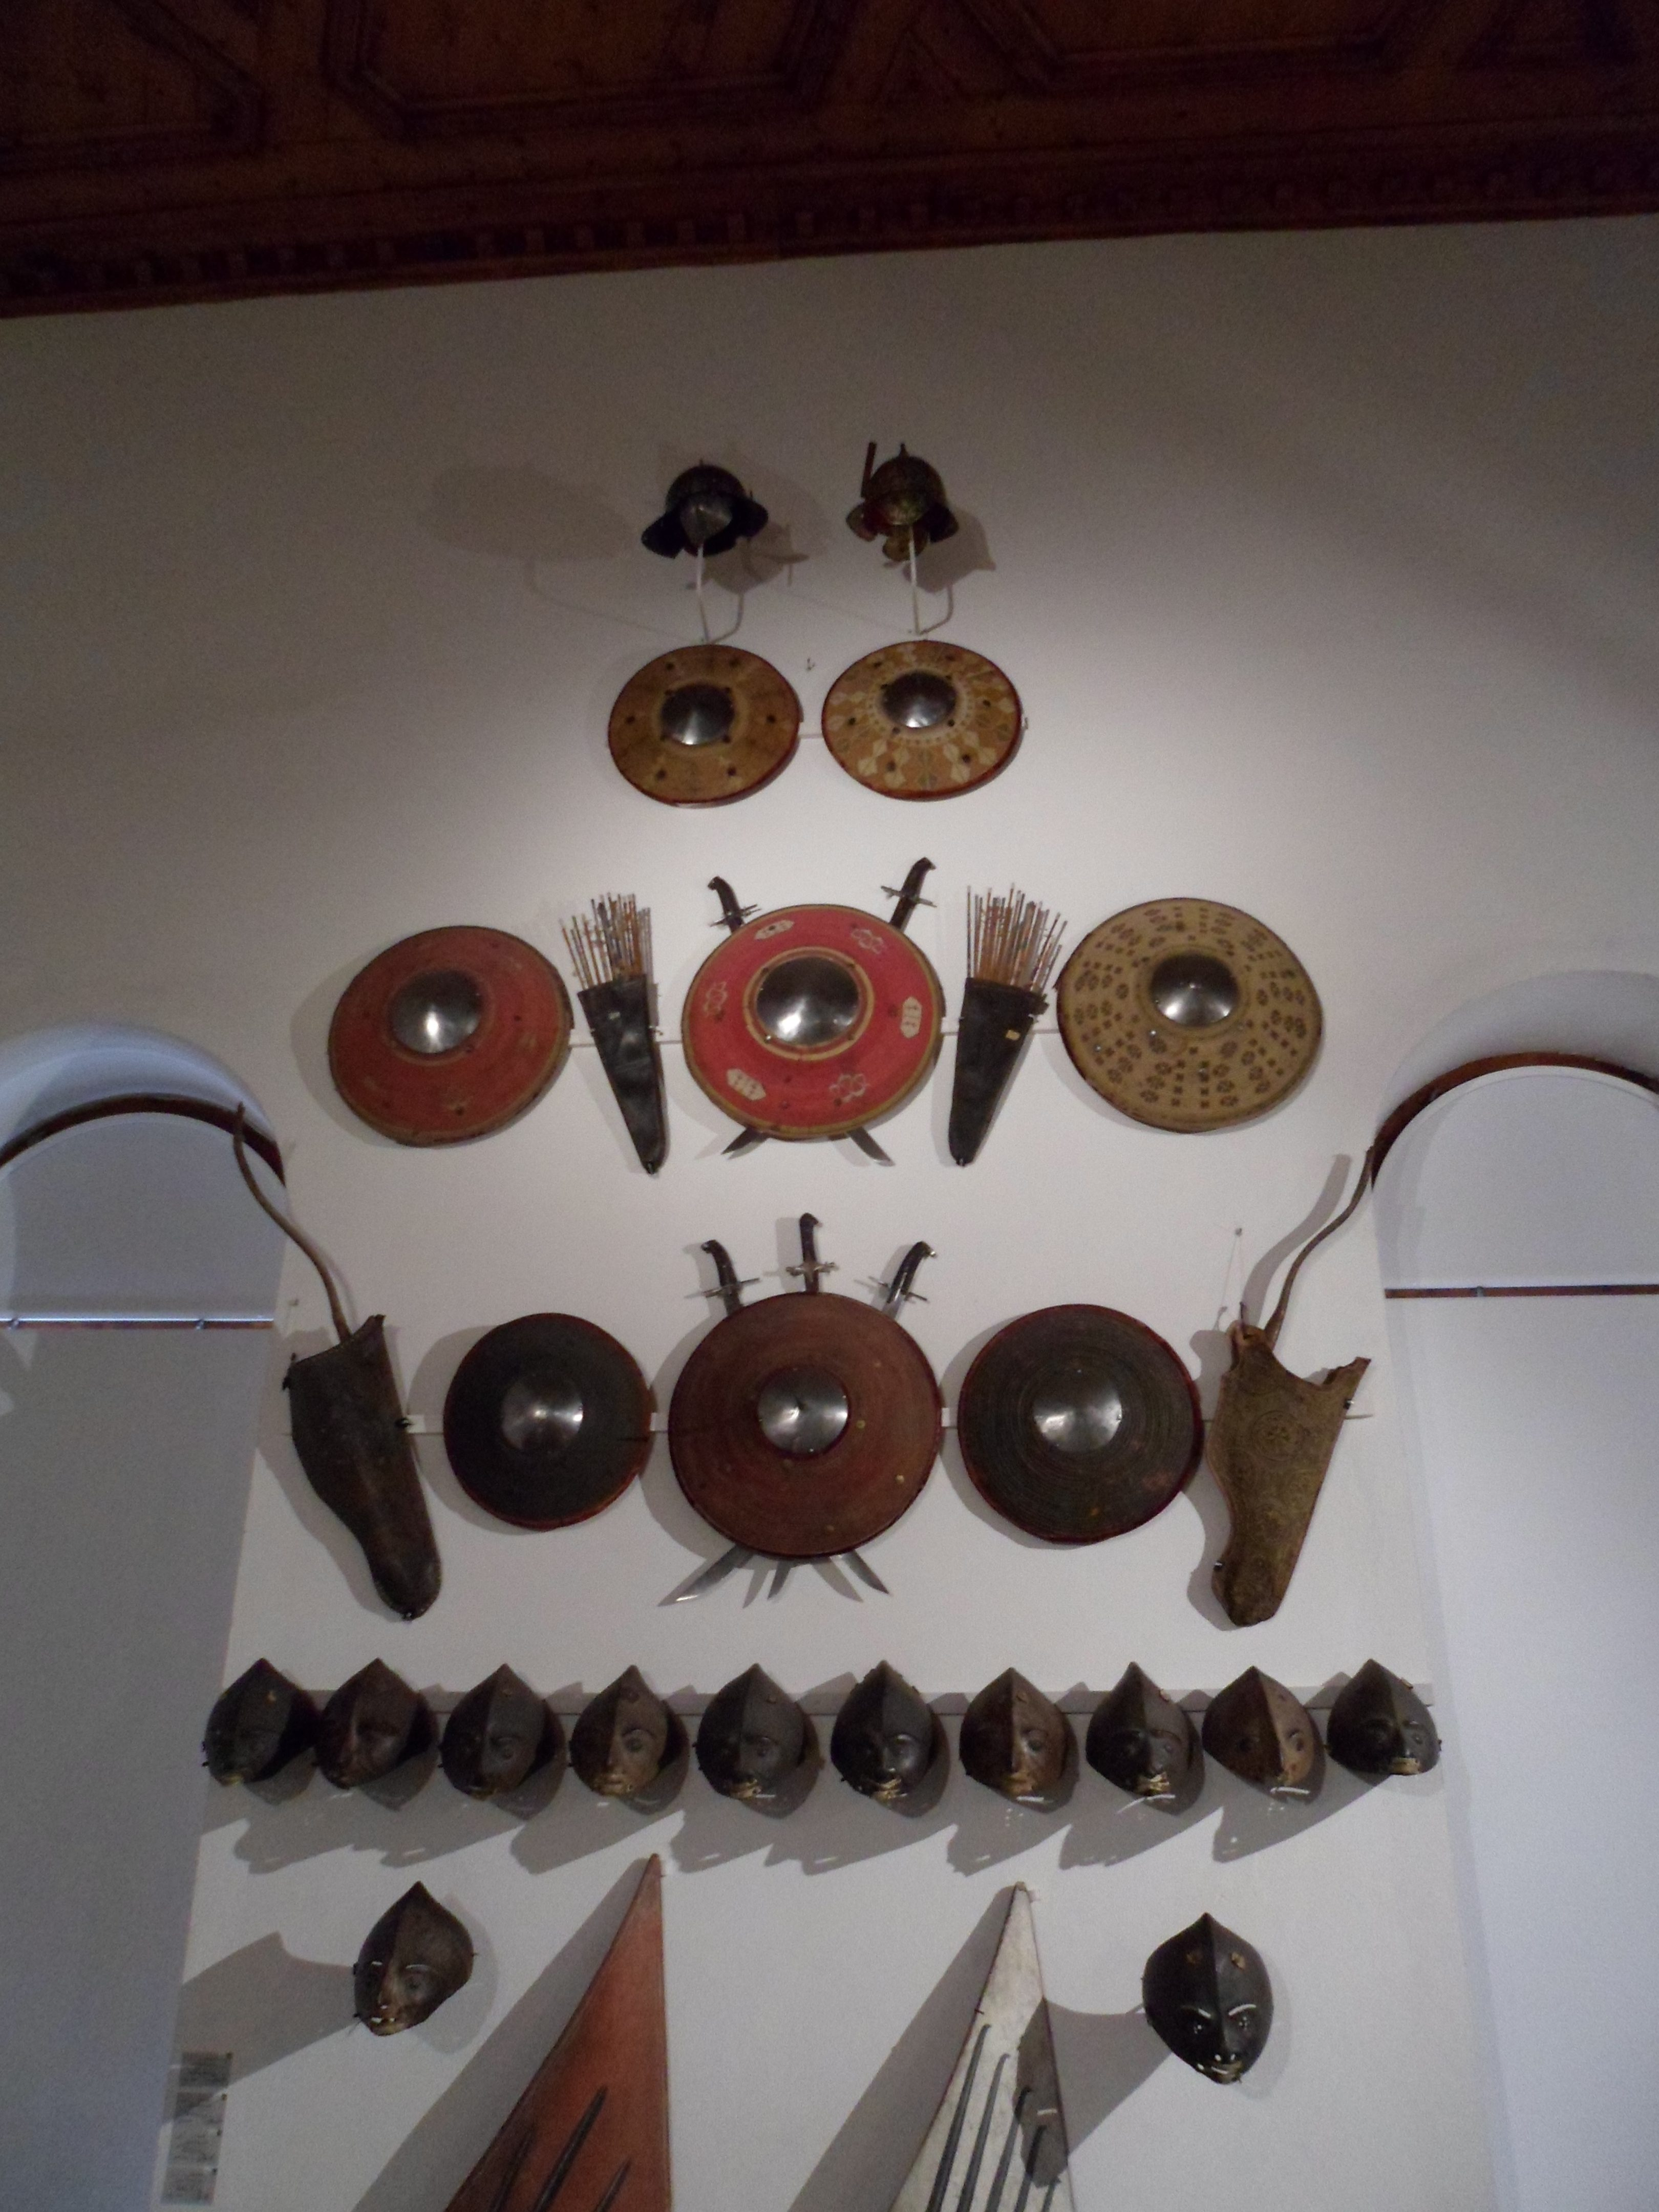 A display of wicker shields, helmets and face-masks, bows in bowcases, and sabres on a whitewashed wall